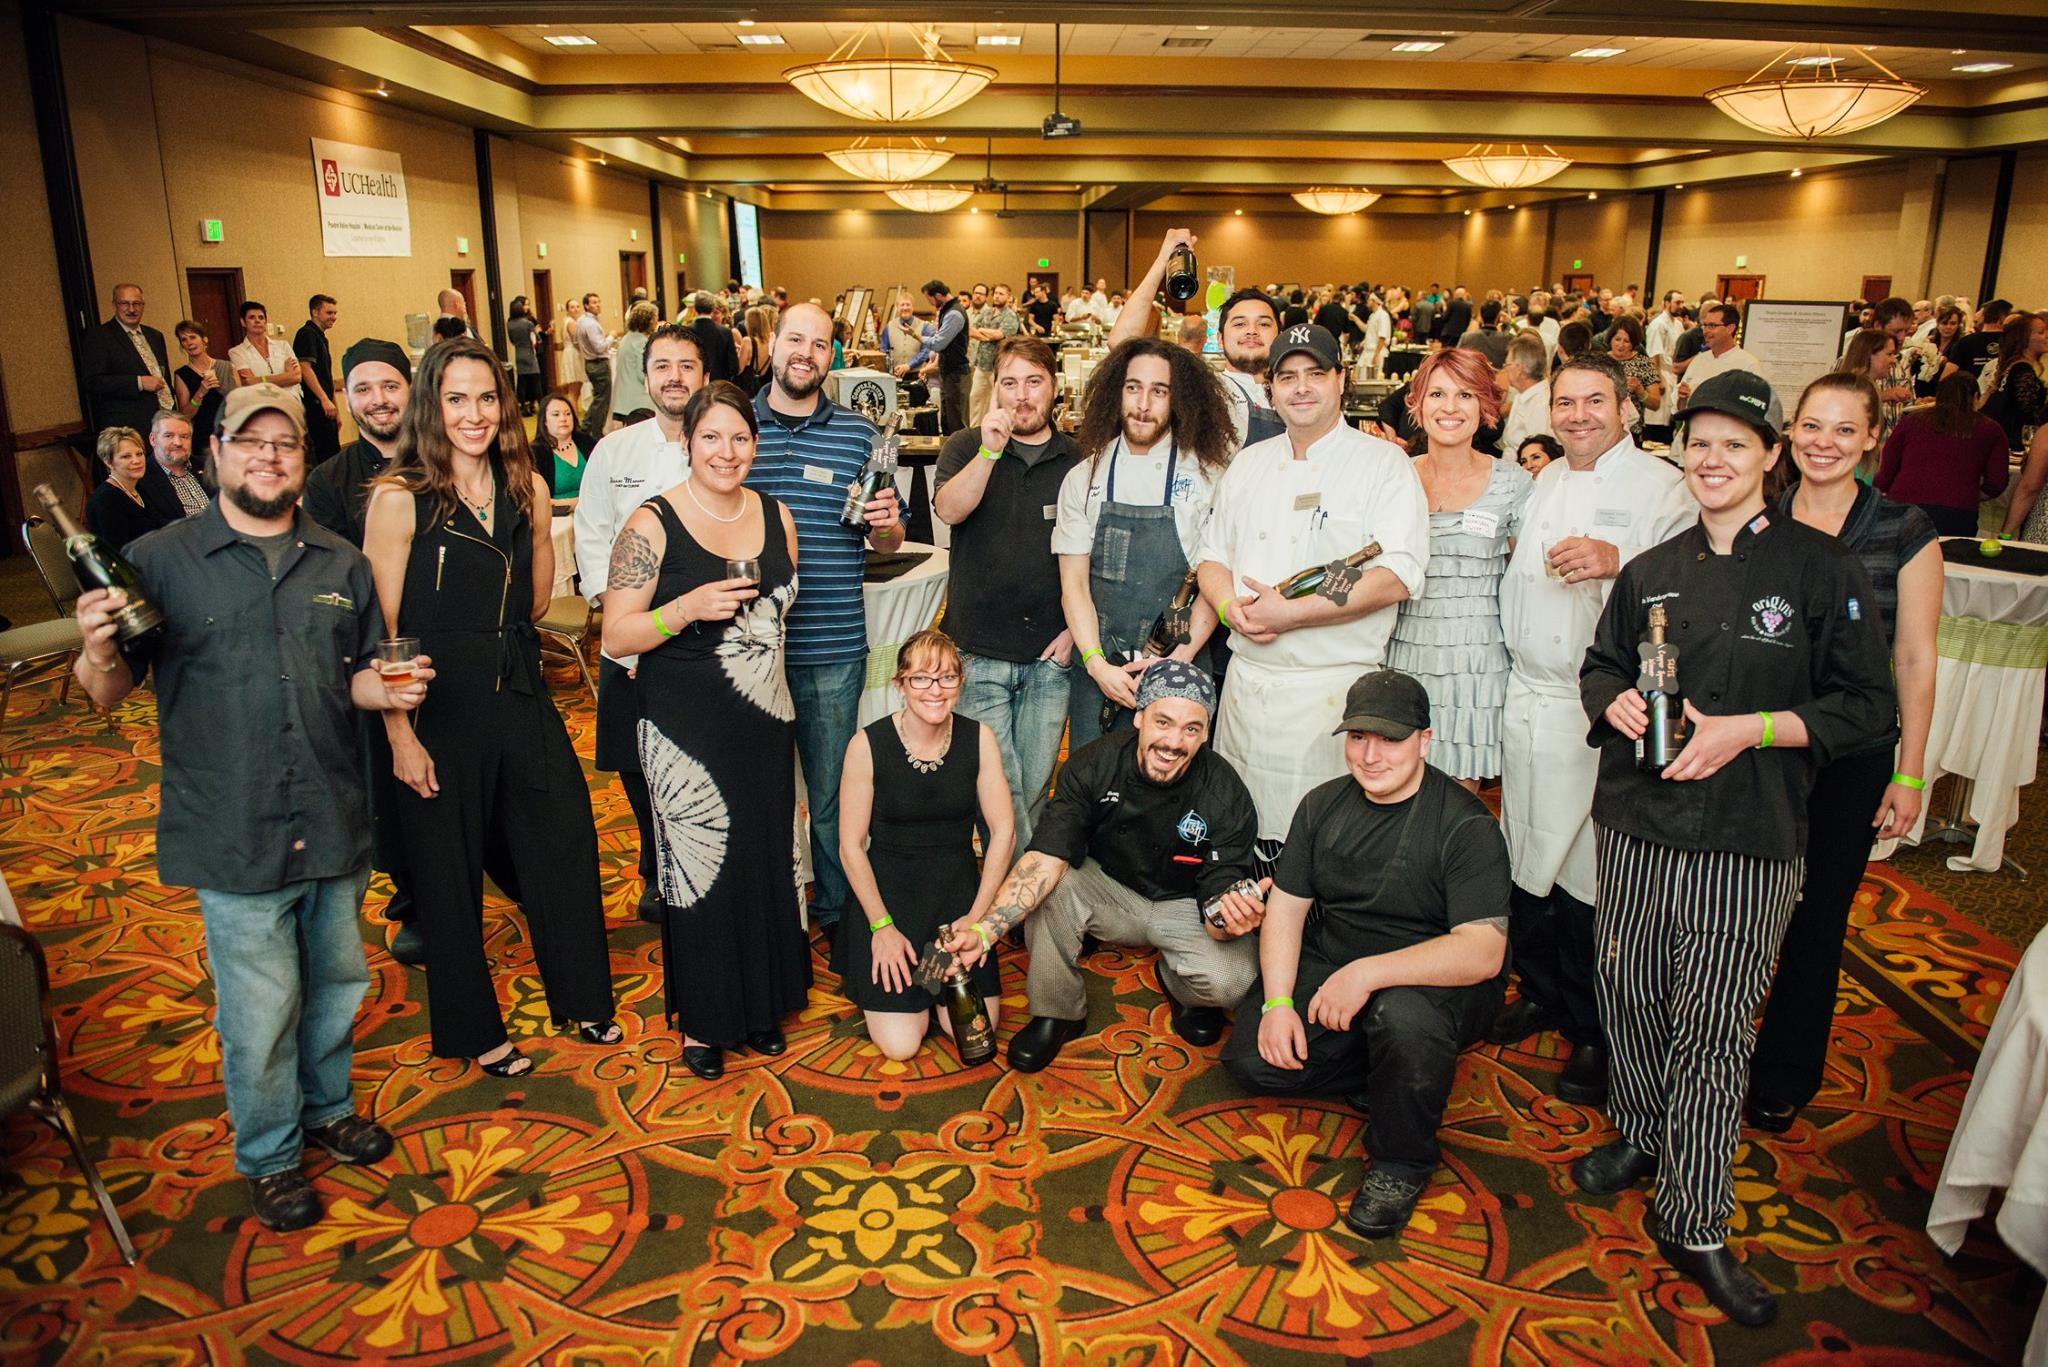 TASTE 2016 brewers and chefs